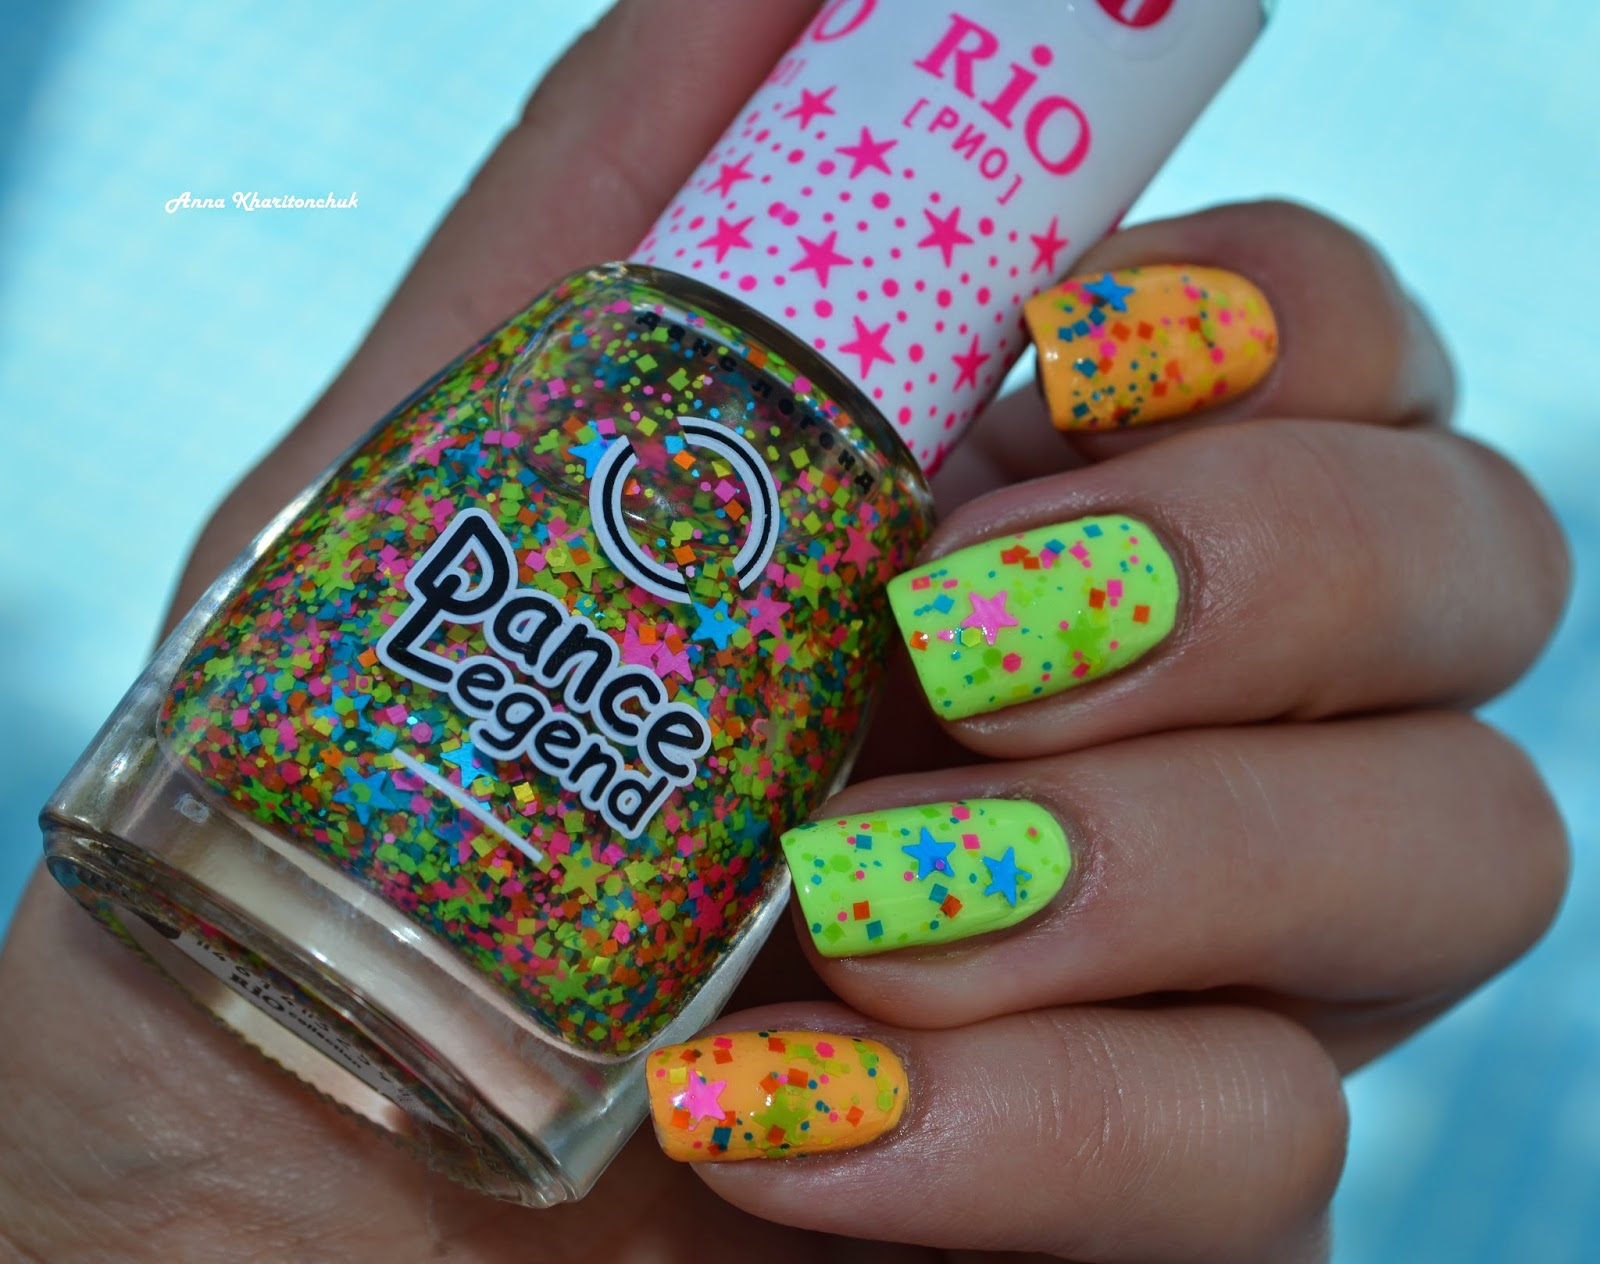 Дуэт China Glaze Metro Pollen-tin и Grass Is Lime Greener с топом Dance Legend Rio # 1